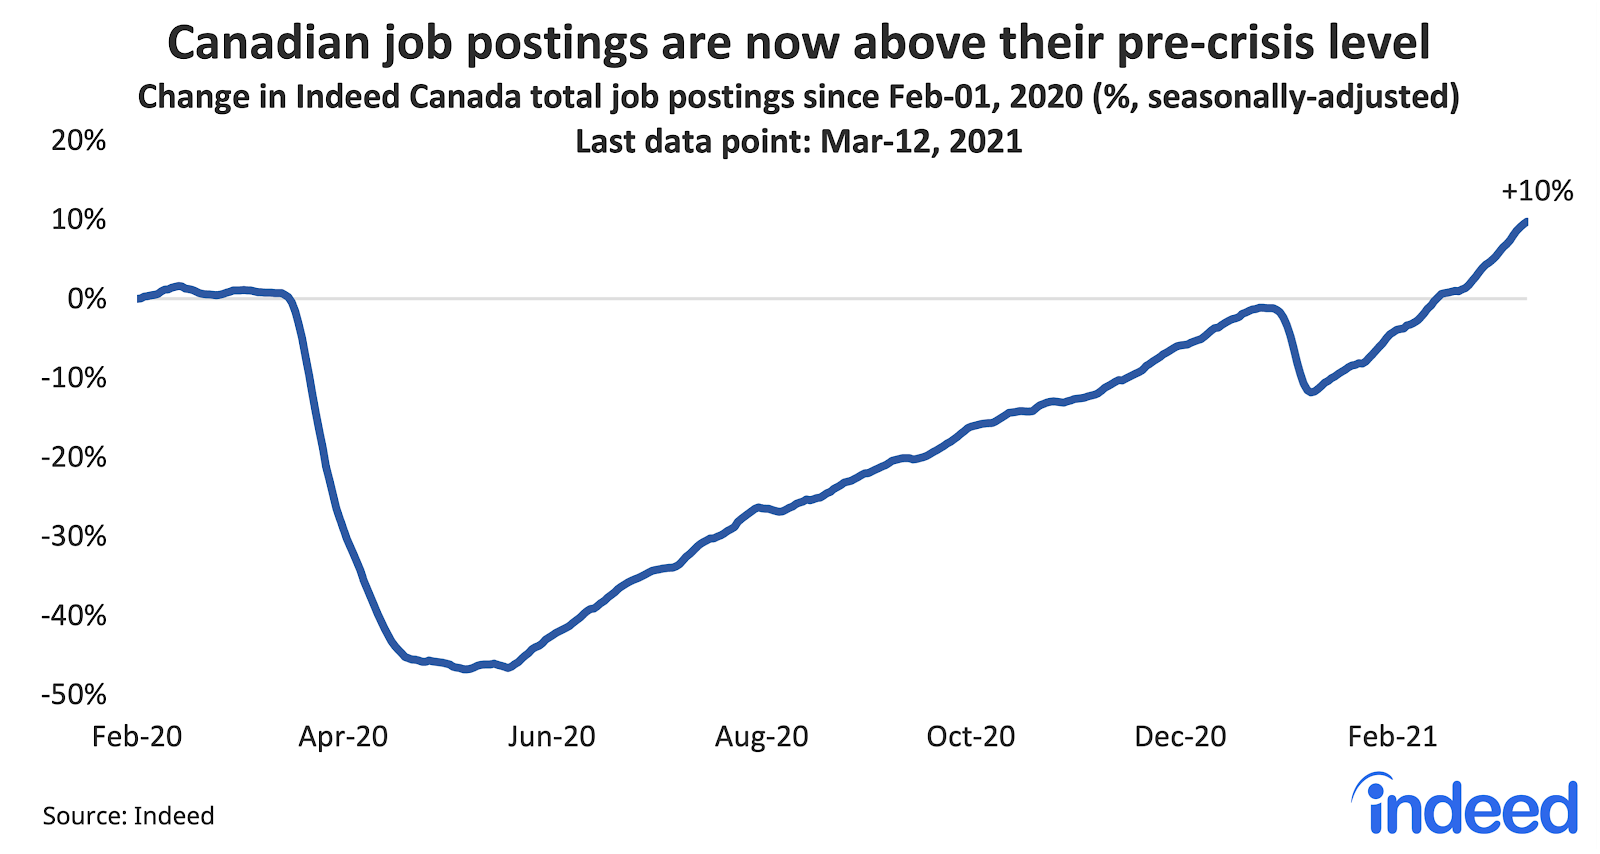 Line graph showing canadian job postings are now above their pre-pandemic level